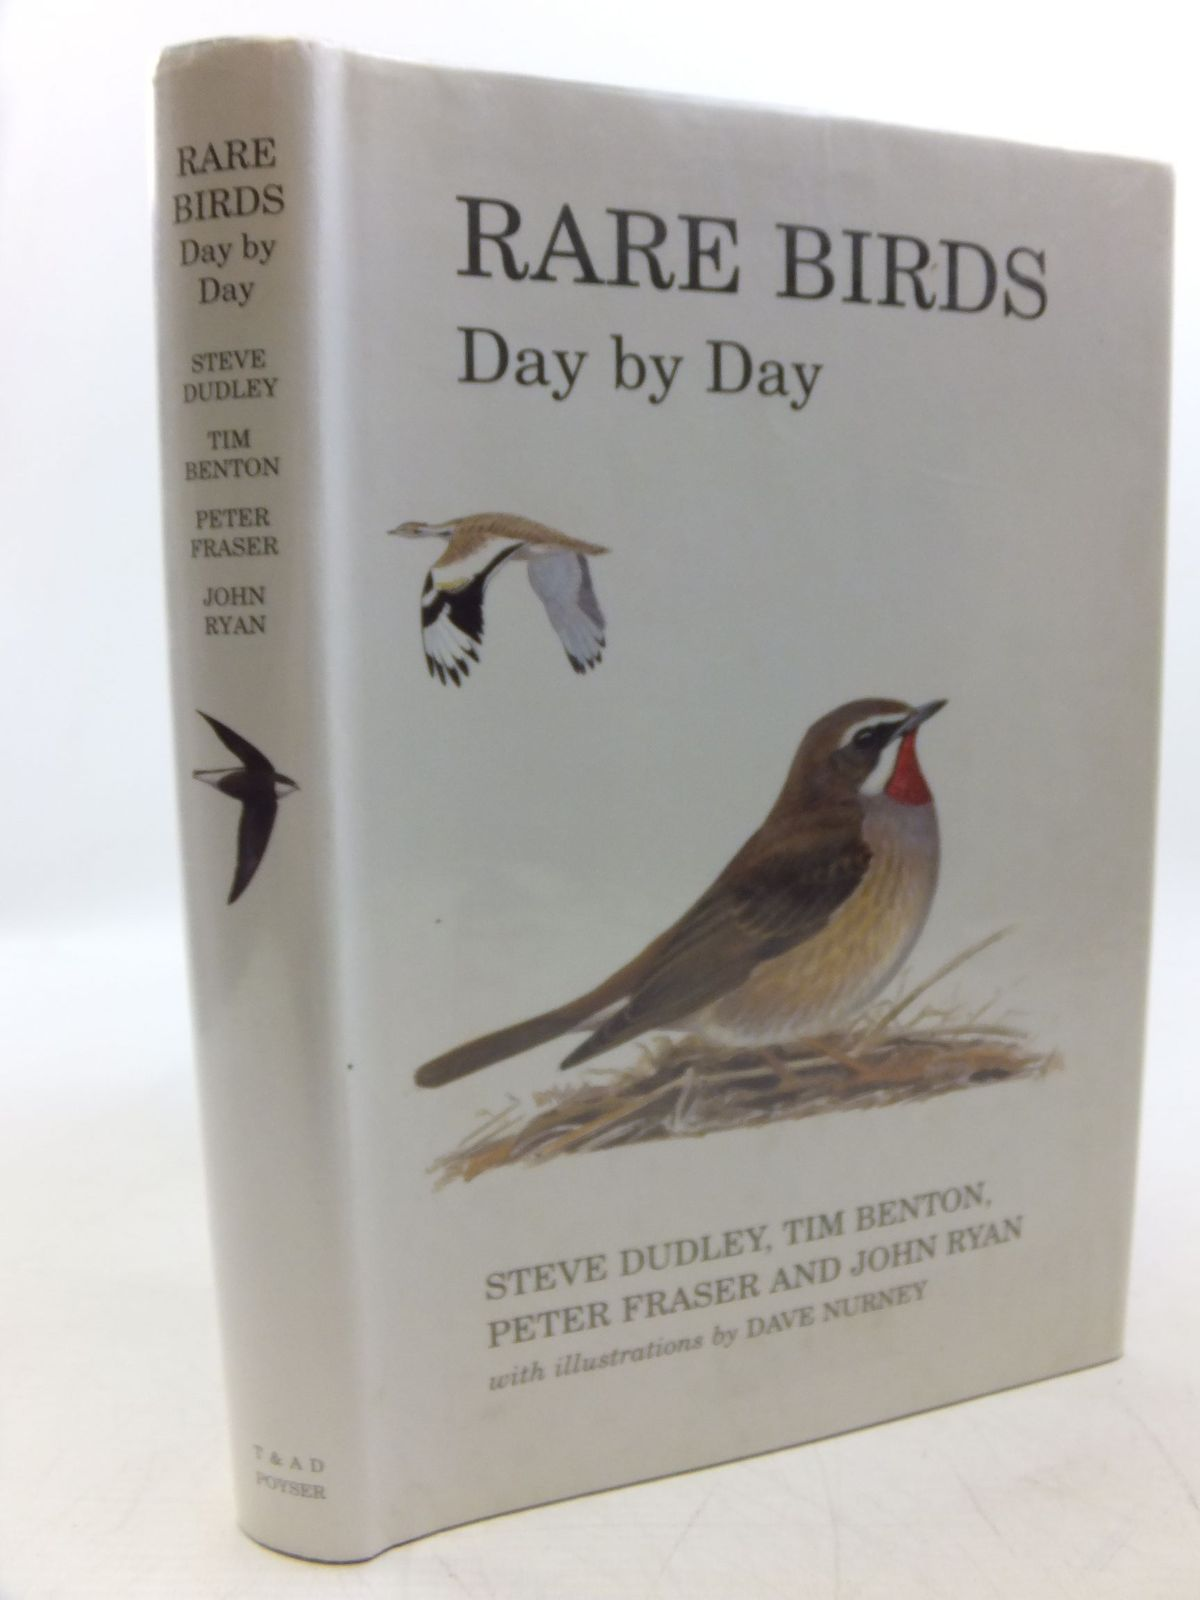 Photo of RARE BIRDS DAY BY DAY written by Dudley, Steve Benton, Tim Fraser, Peter Ryan, John illustrated by Nurney, Dave published by T. & A.D. Poyser (STOCK CODE: 2118567)  for sale by Stella & Rose's Books